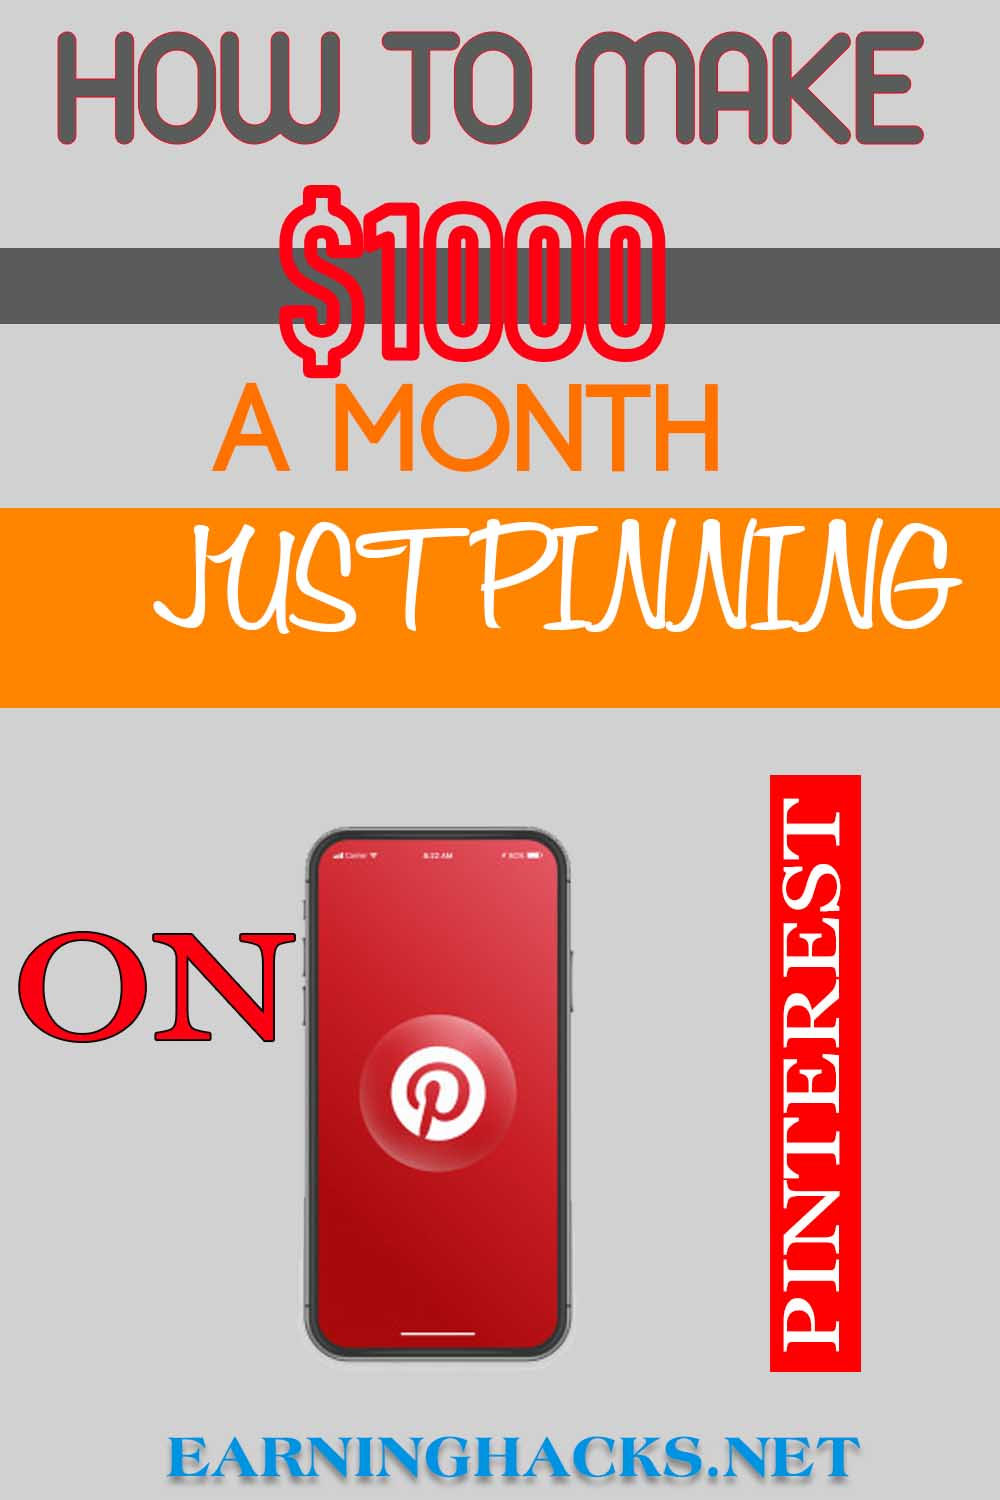 How To Make $1000 A Month Just Pinning